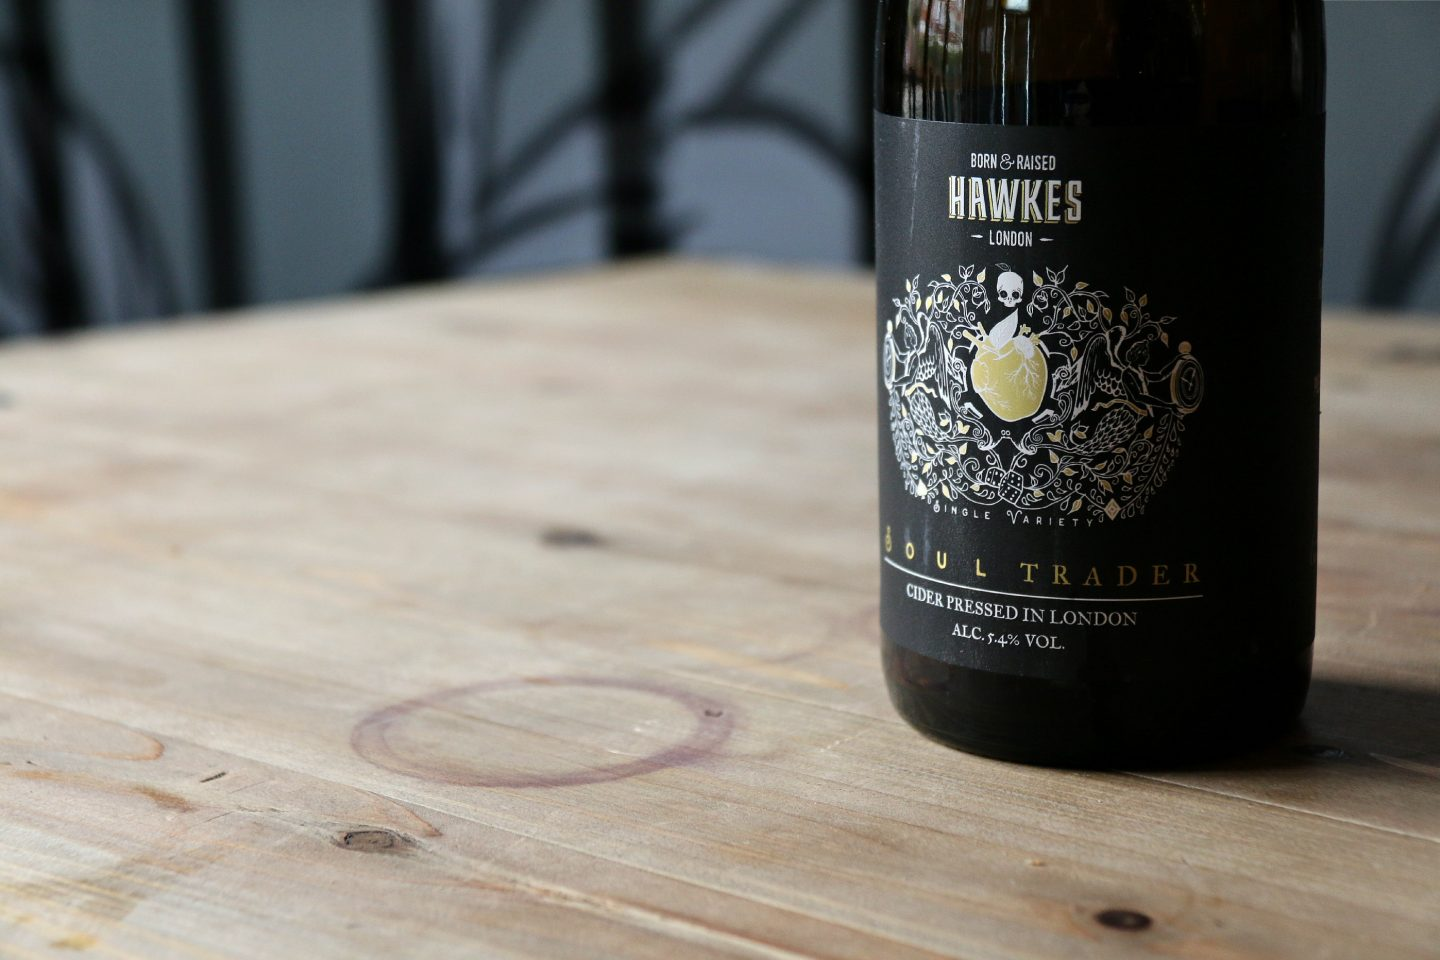 Hawkes Cidery Tap Room Druid Street Bermondsey cider London soul trader